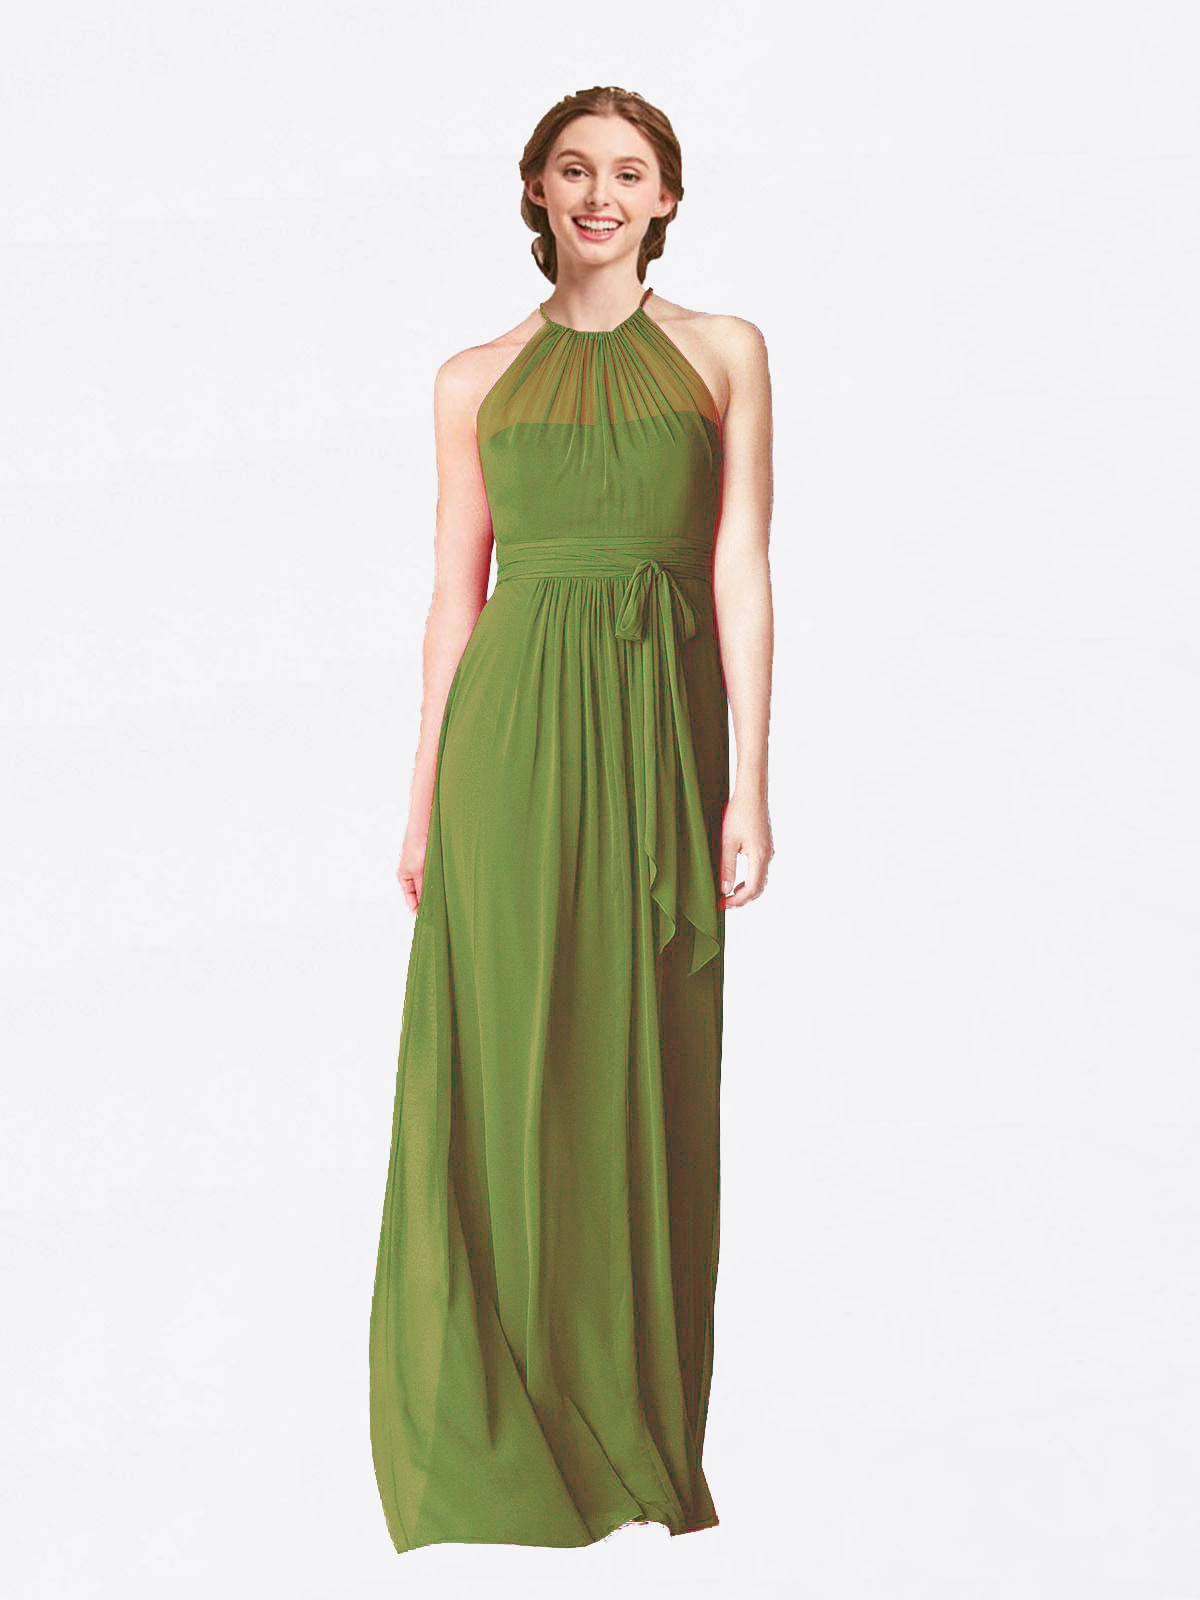 Long A-Line Halter Sleeveless Olive Green Chiffon Bridesmaid Dress Laura